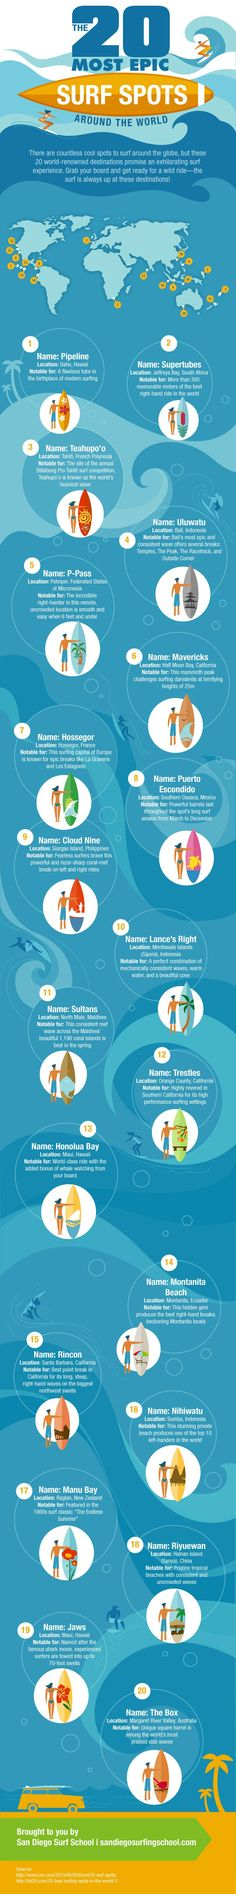 The 20 Most Epic Surf Spots Around The World #infographic #Surfing #Travel